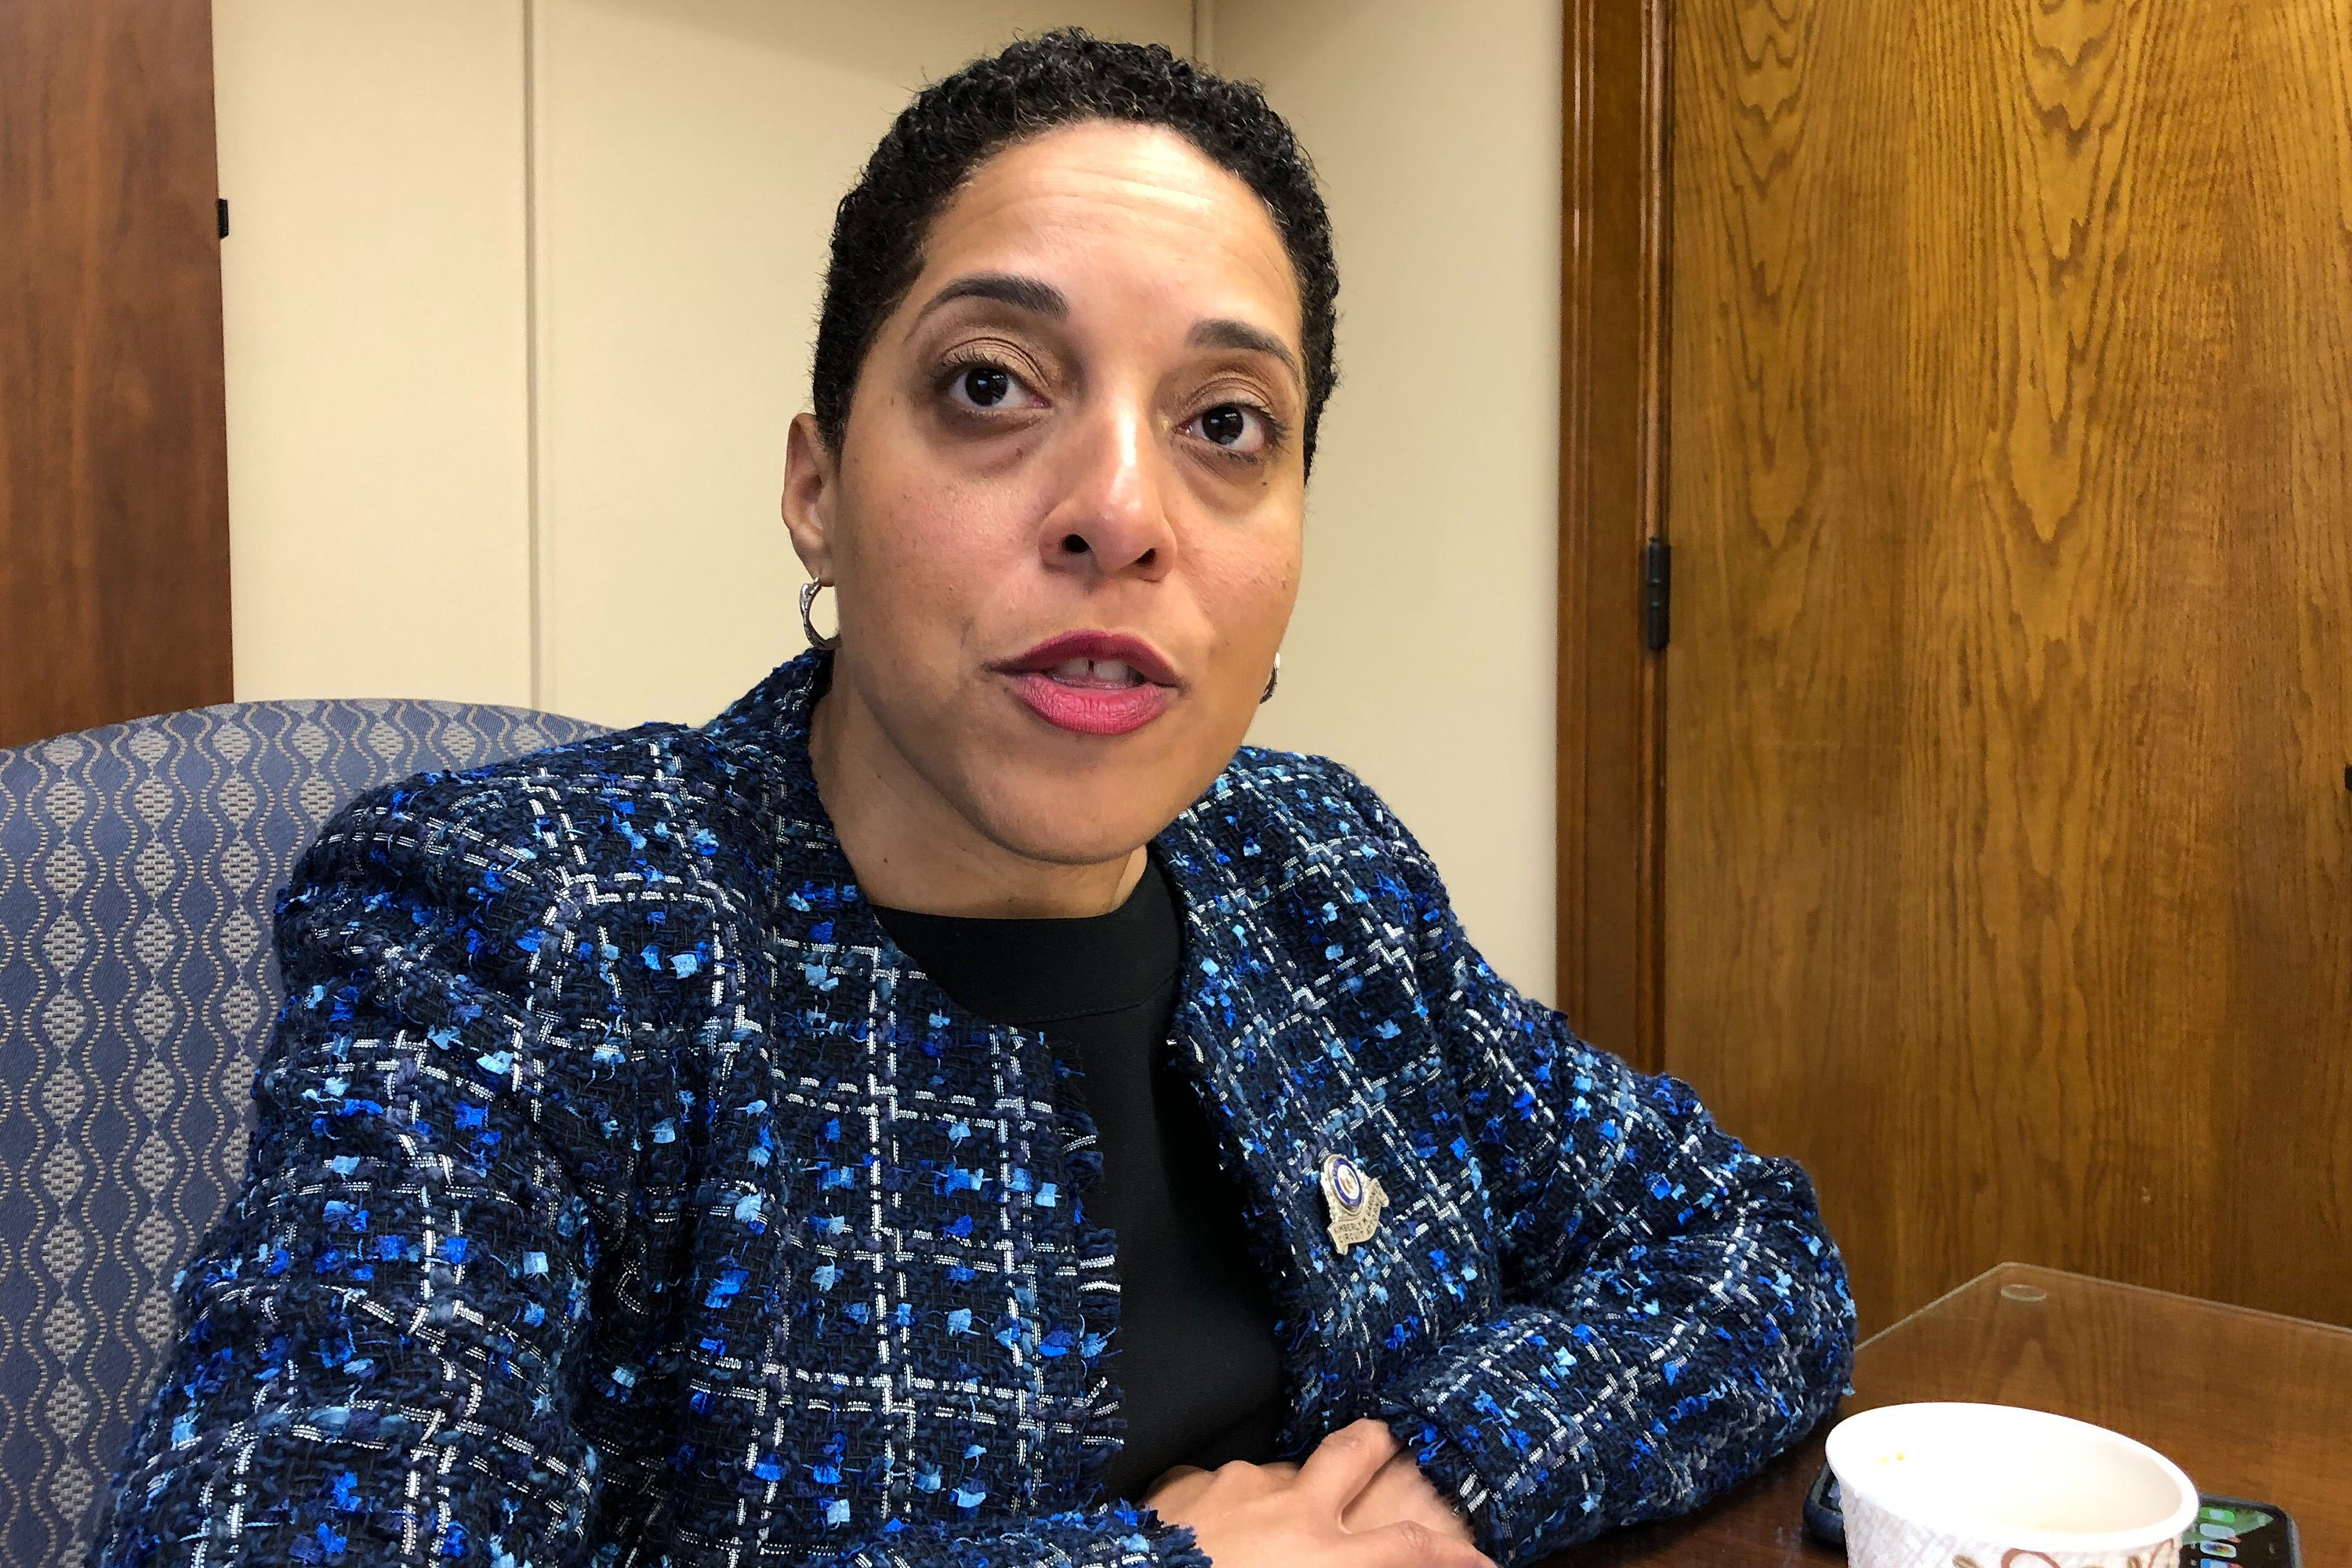 St. Louis prosecutor, police at odds again over traffic stop